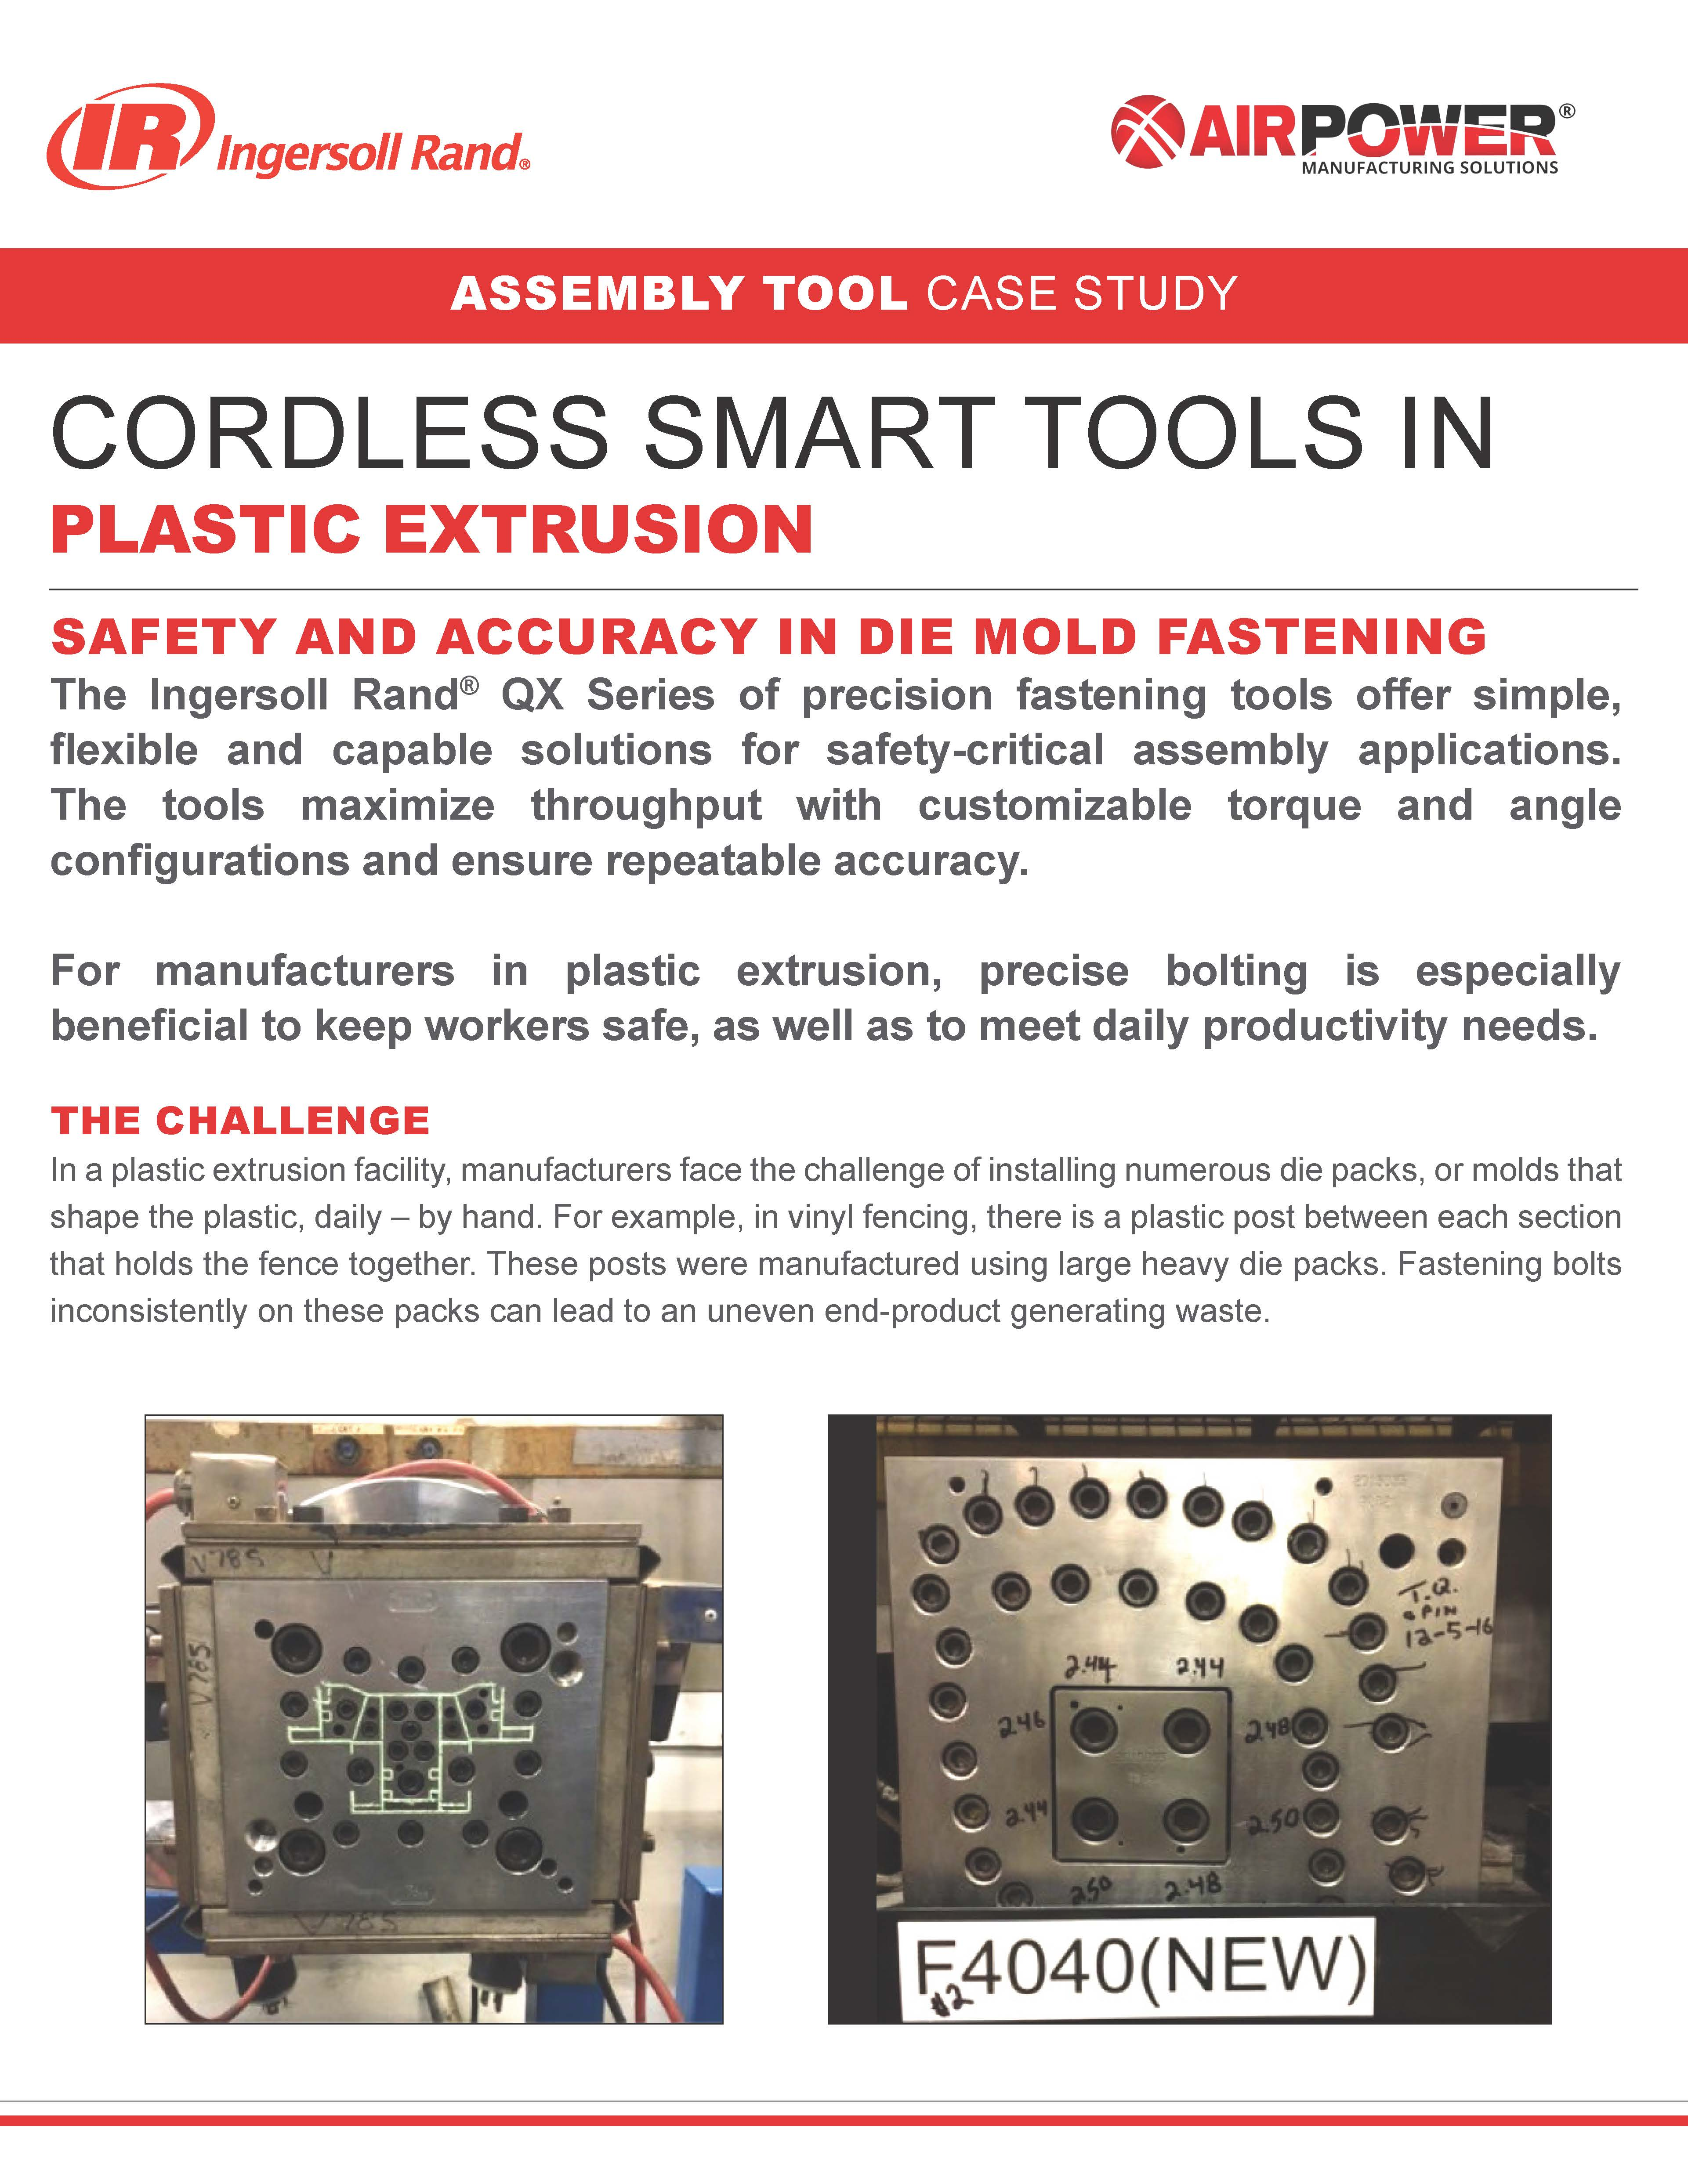 Ingersoll Rand Plastic Extrusion Case Study